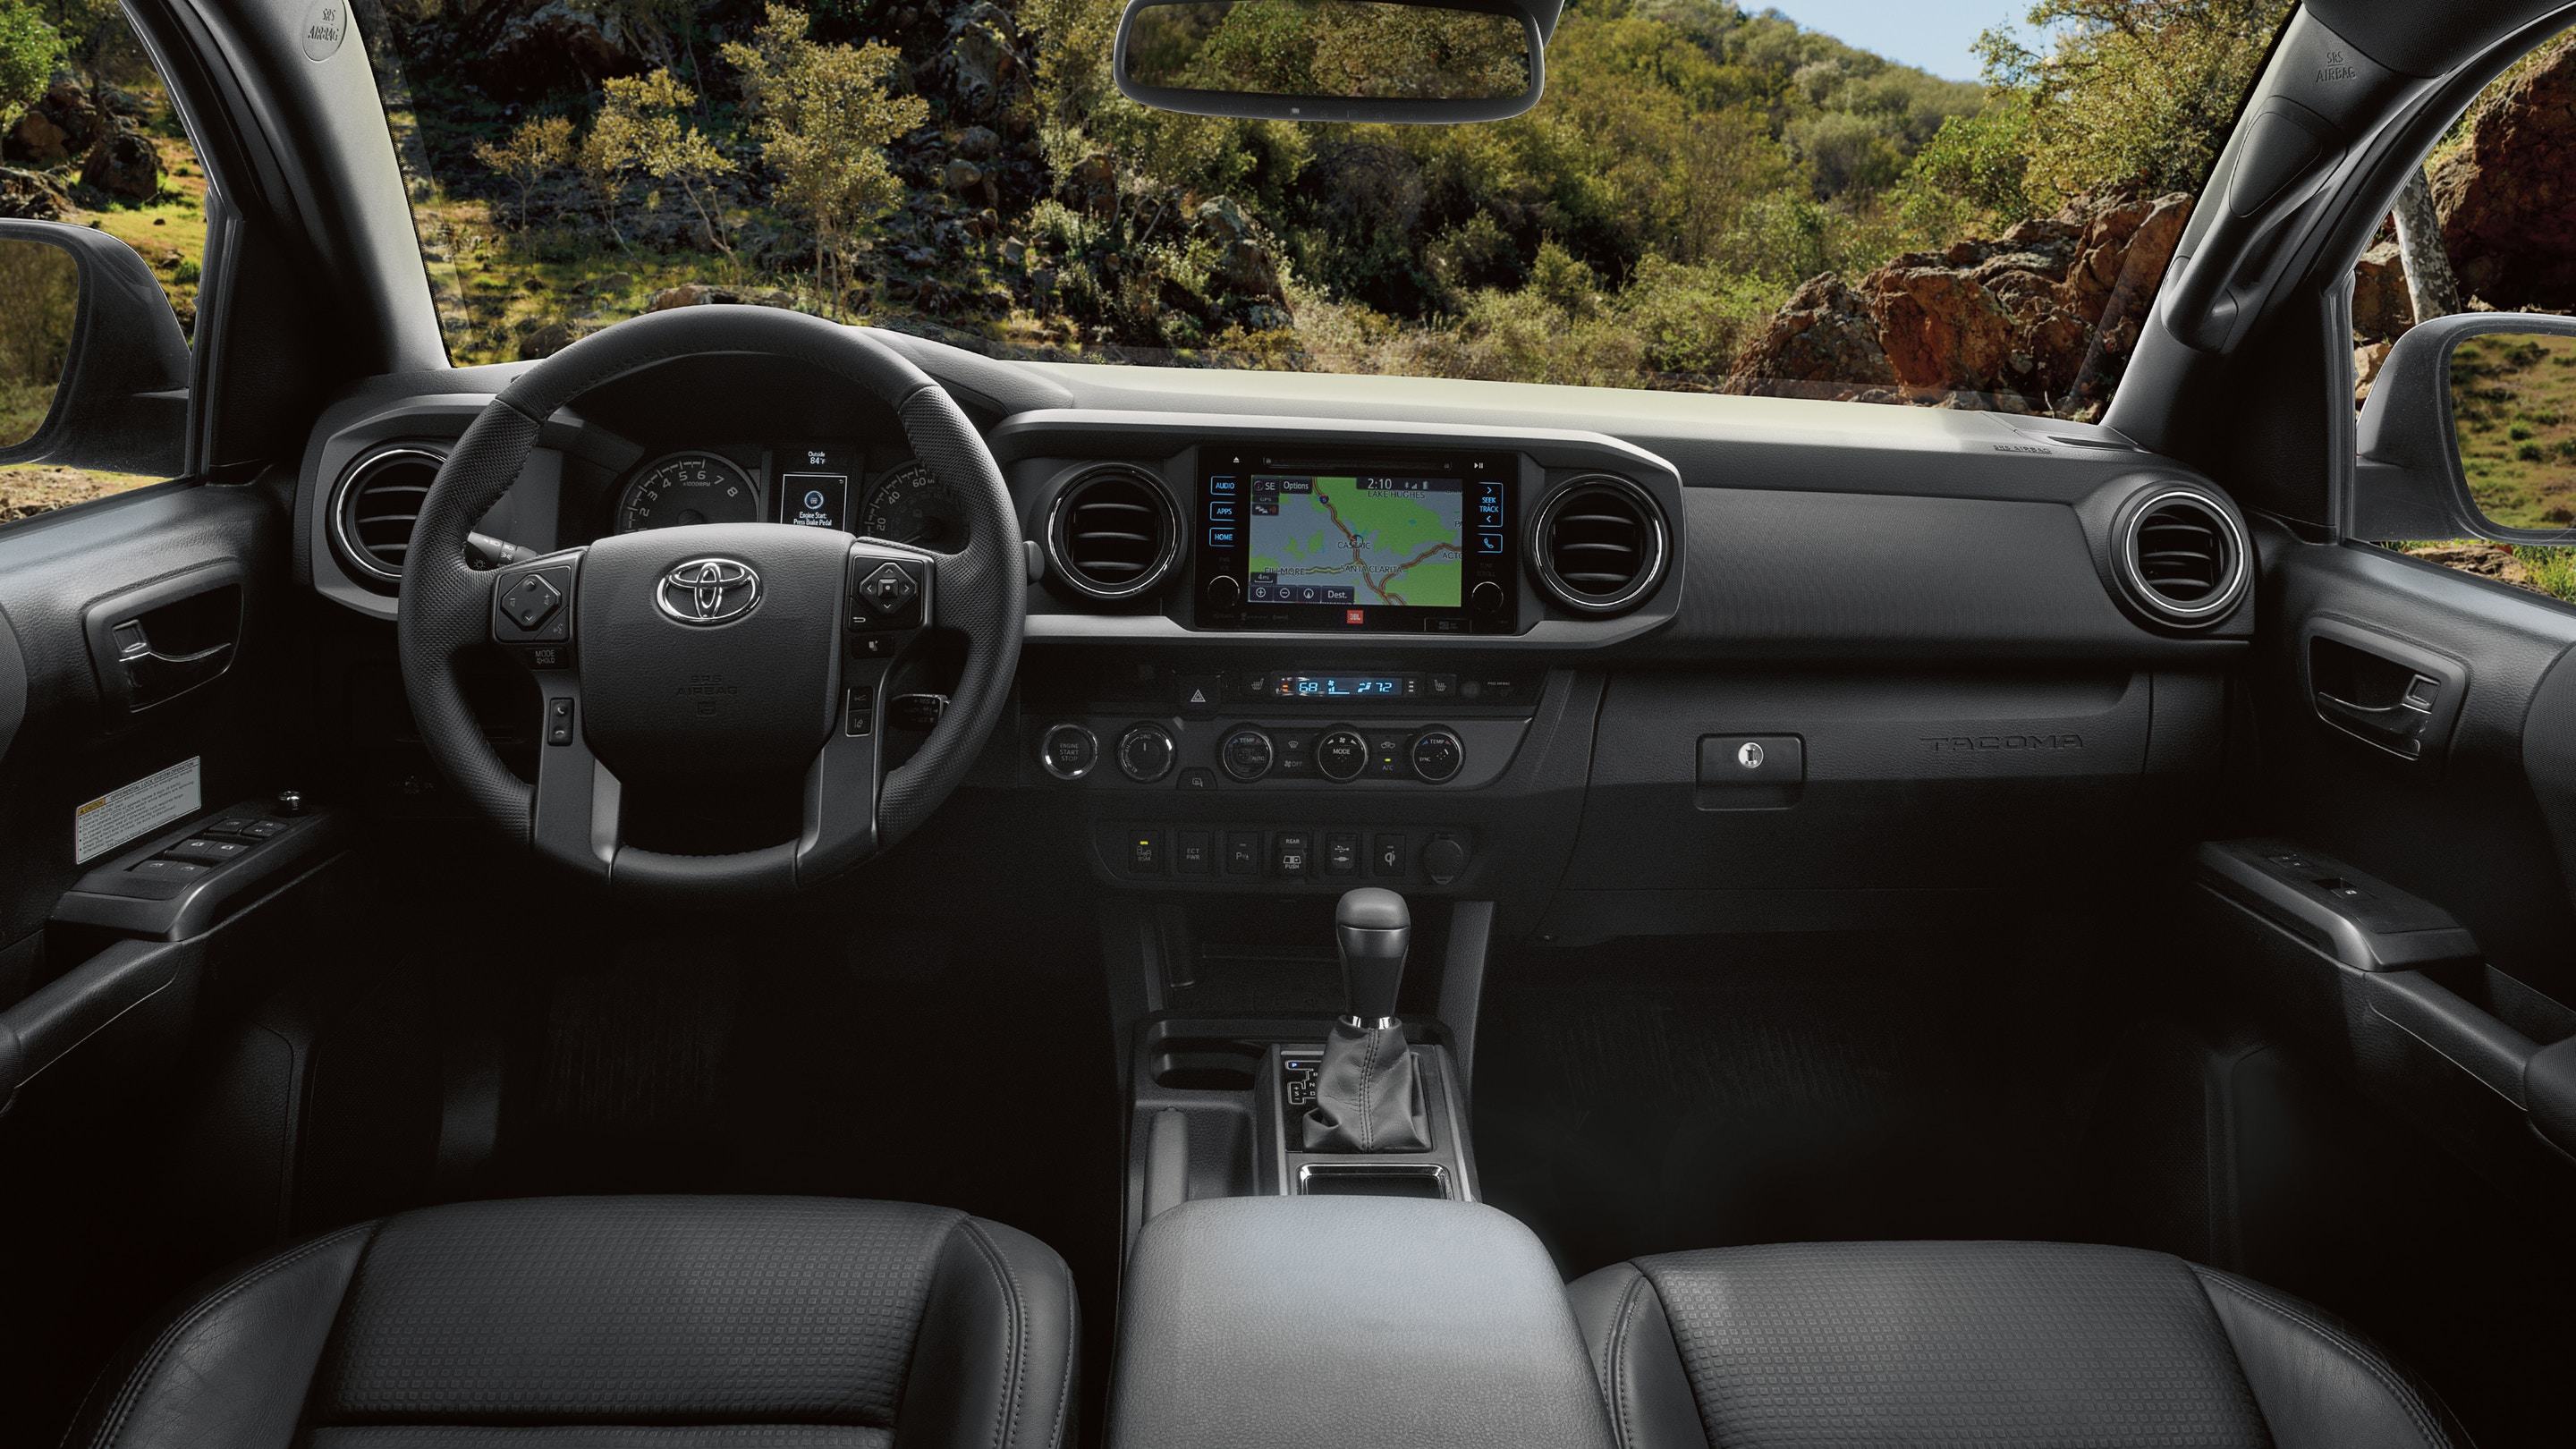 Advanced Features in the Toyota Tacoma